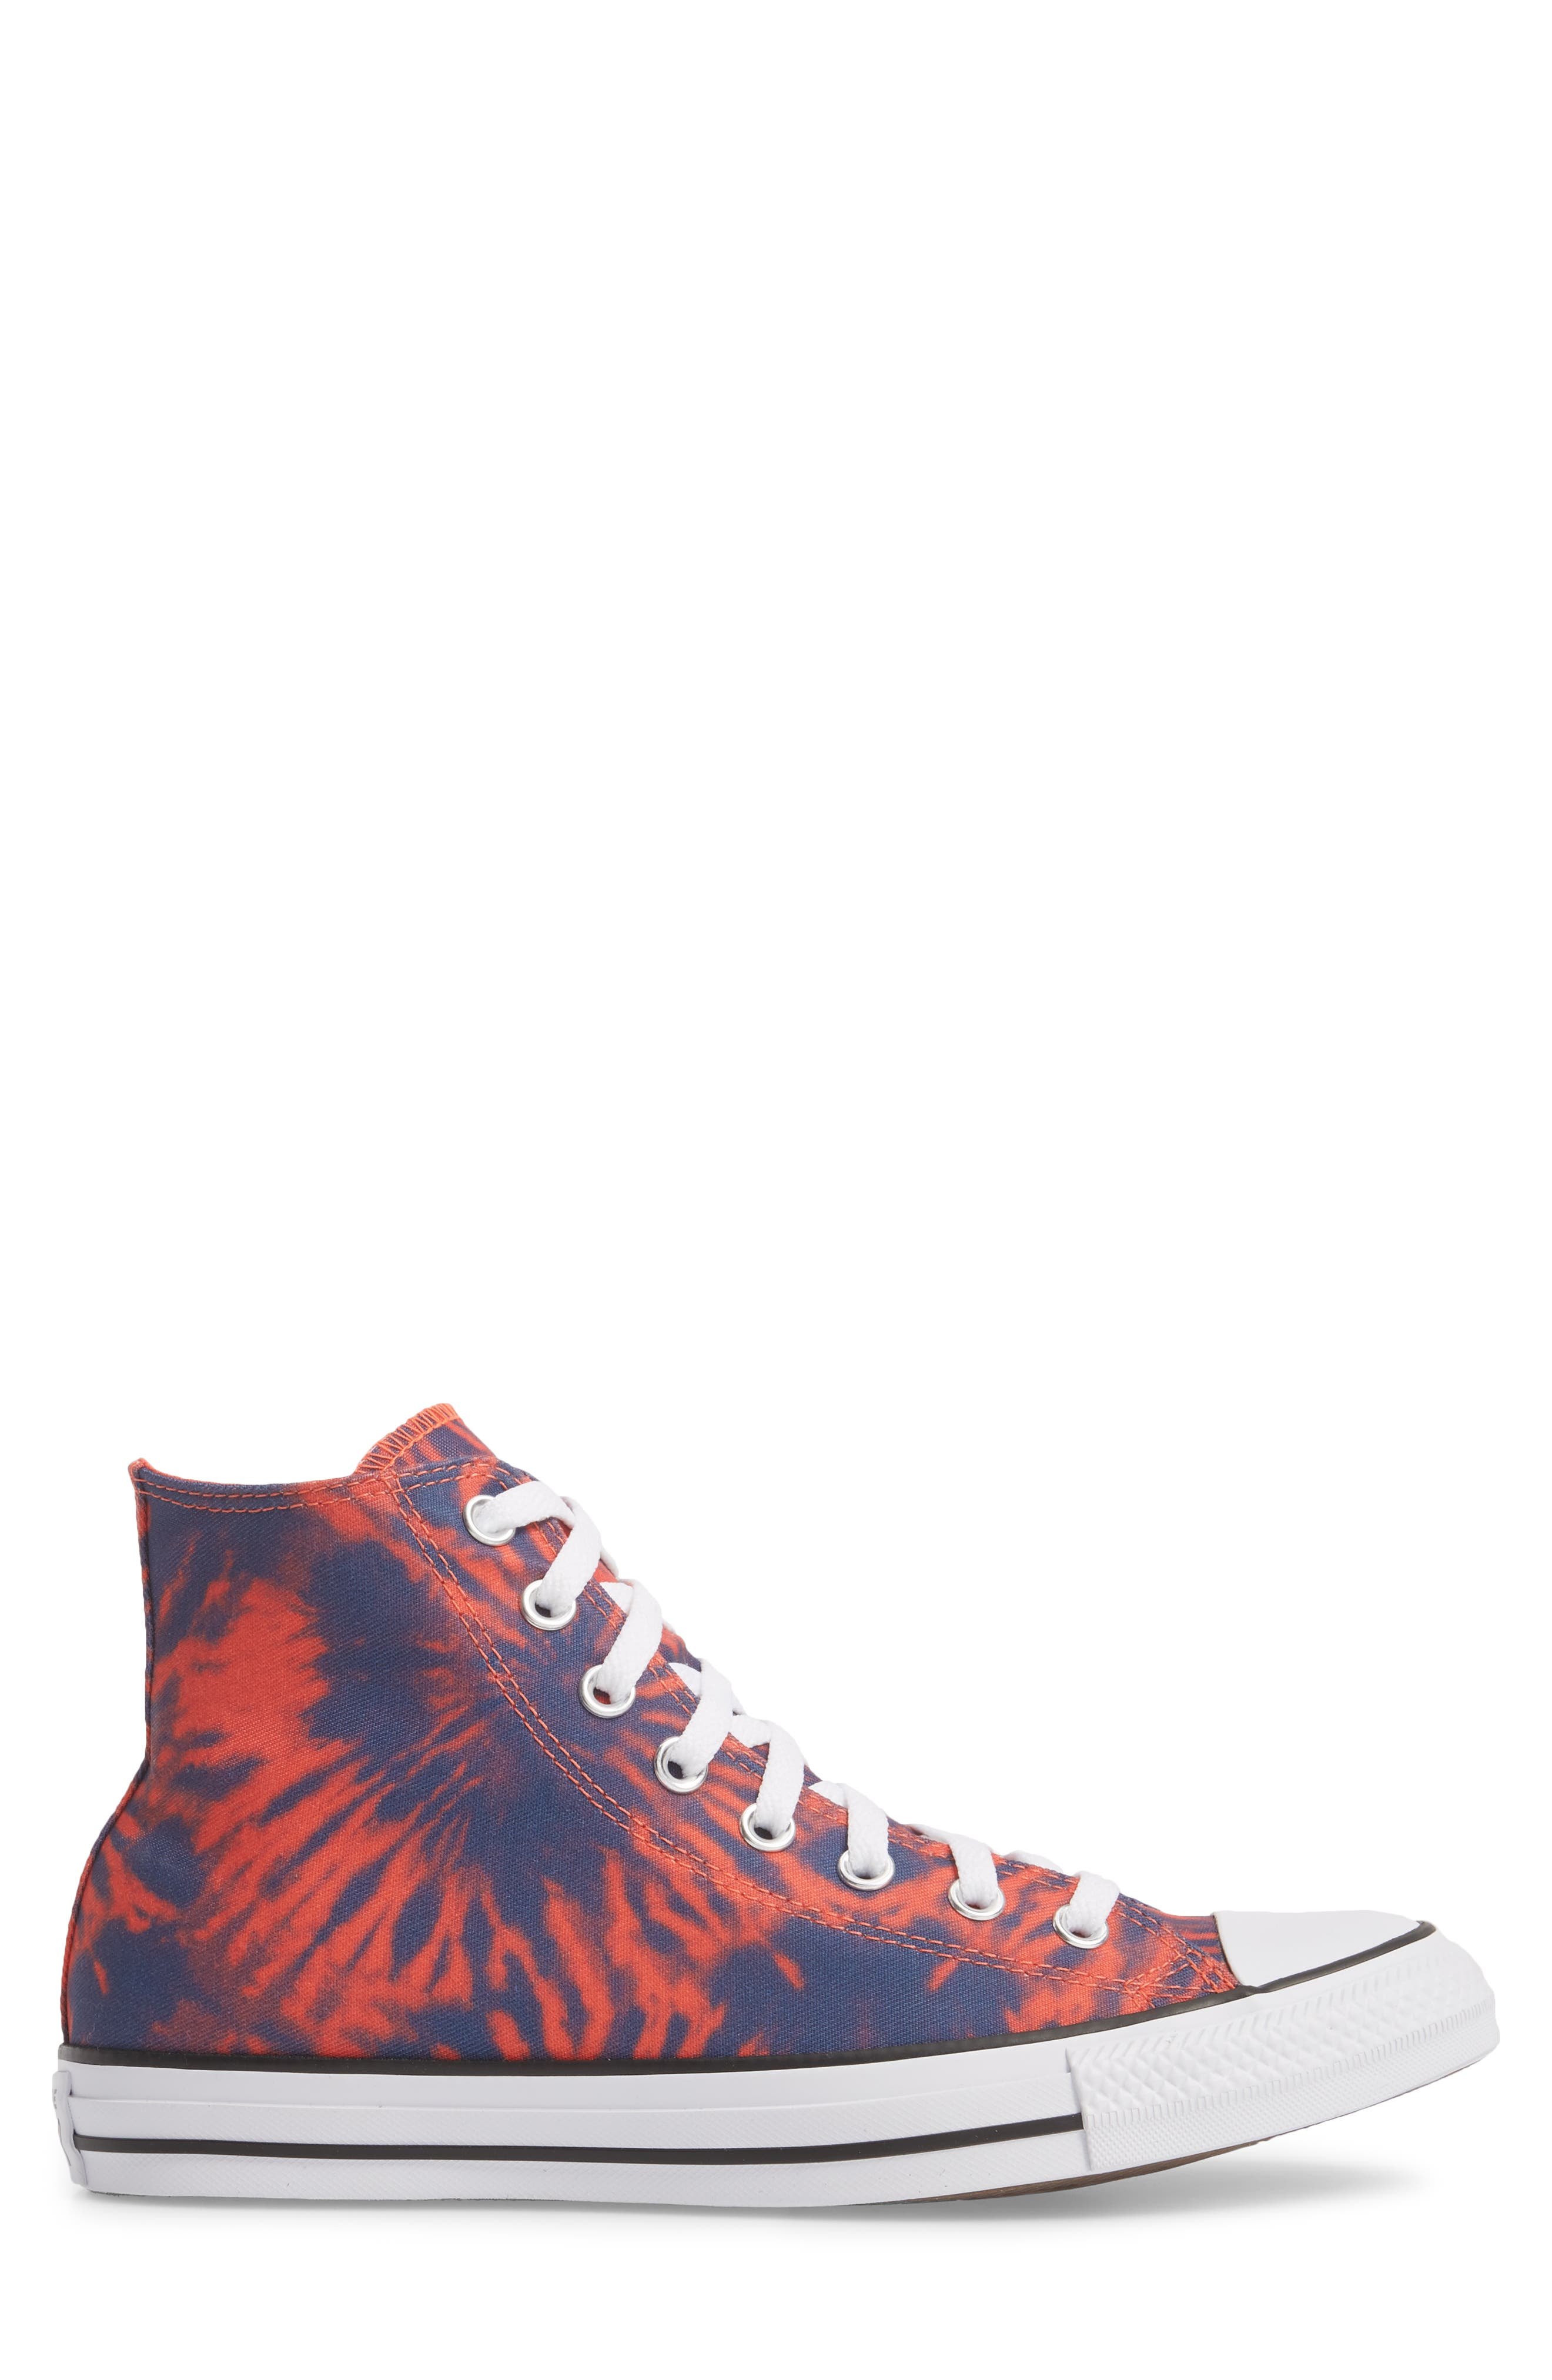 Chuck Taylor<sup>®</sup> All Star<sup>®</sup> Tie Dye High Top Sneaker,                             Alternate thumbnail 3, color,